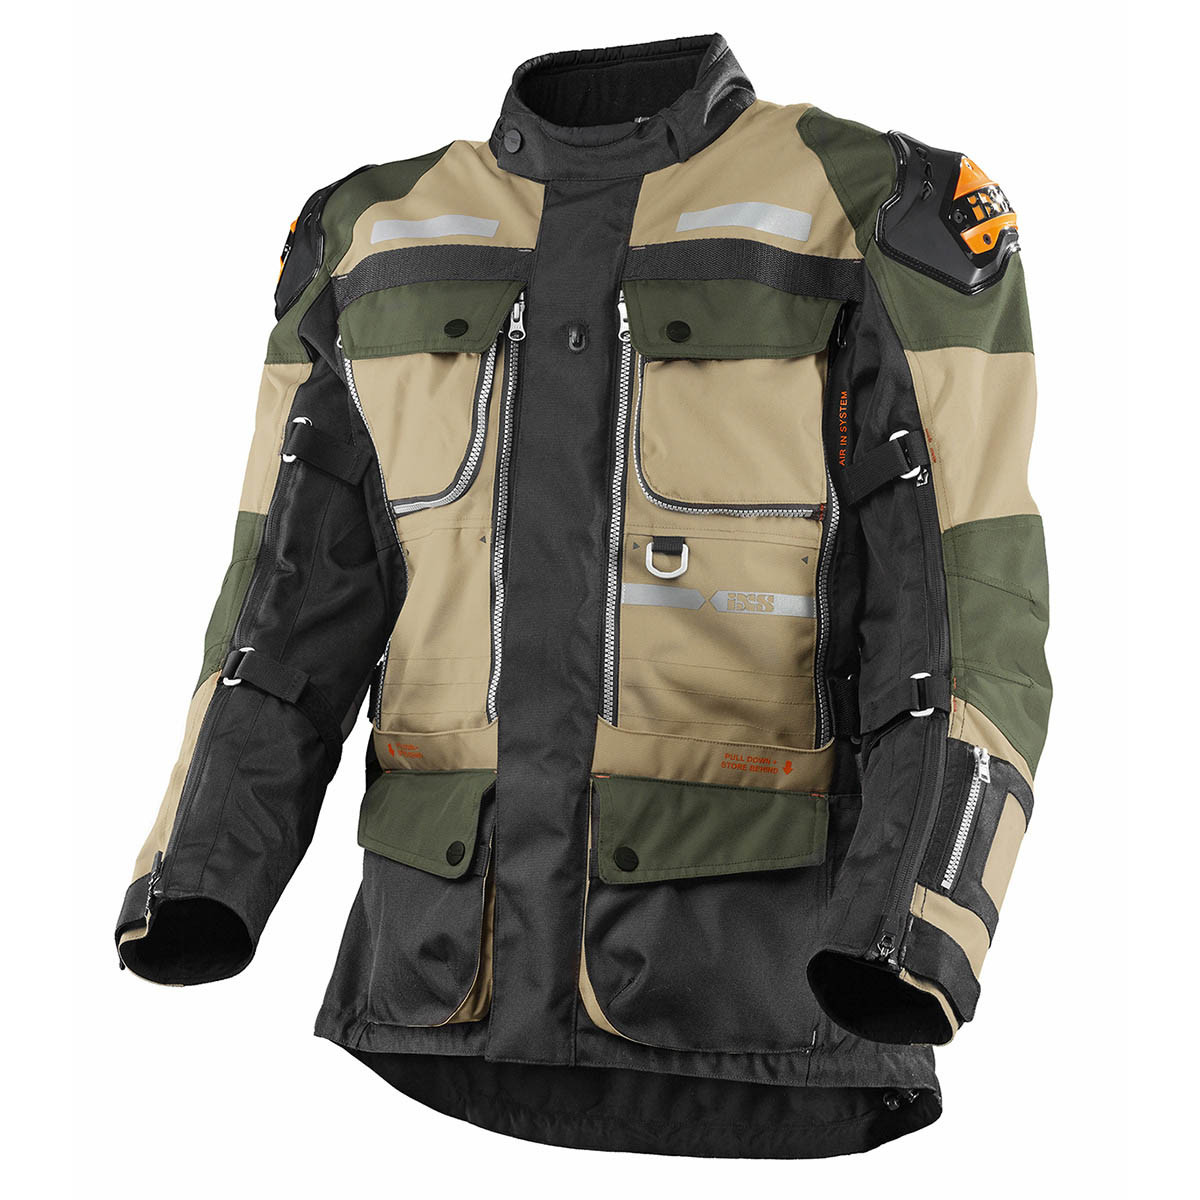 MONTEVIDEO RS-1000 JACKET